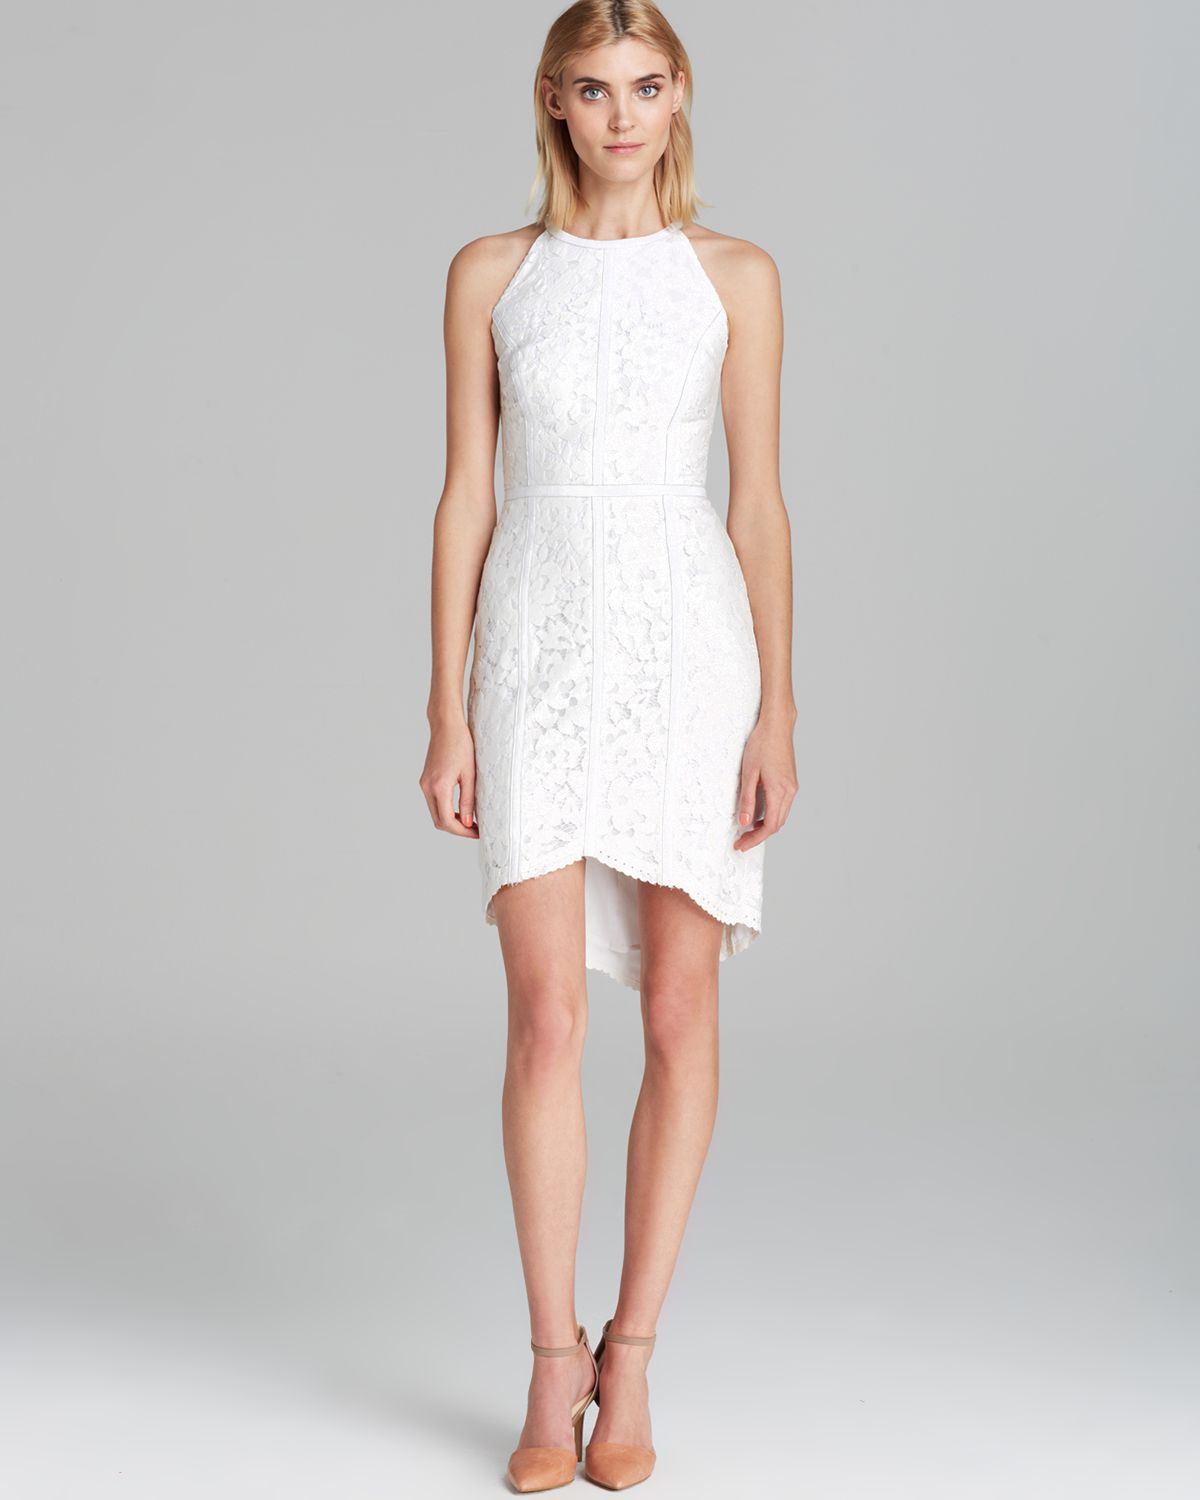 cynthia-steffe-white-dress-ryder-sleeveless-floral-lace-with-leather-product-1-17616402-1-978664717-normal.jpeg